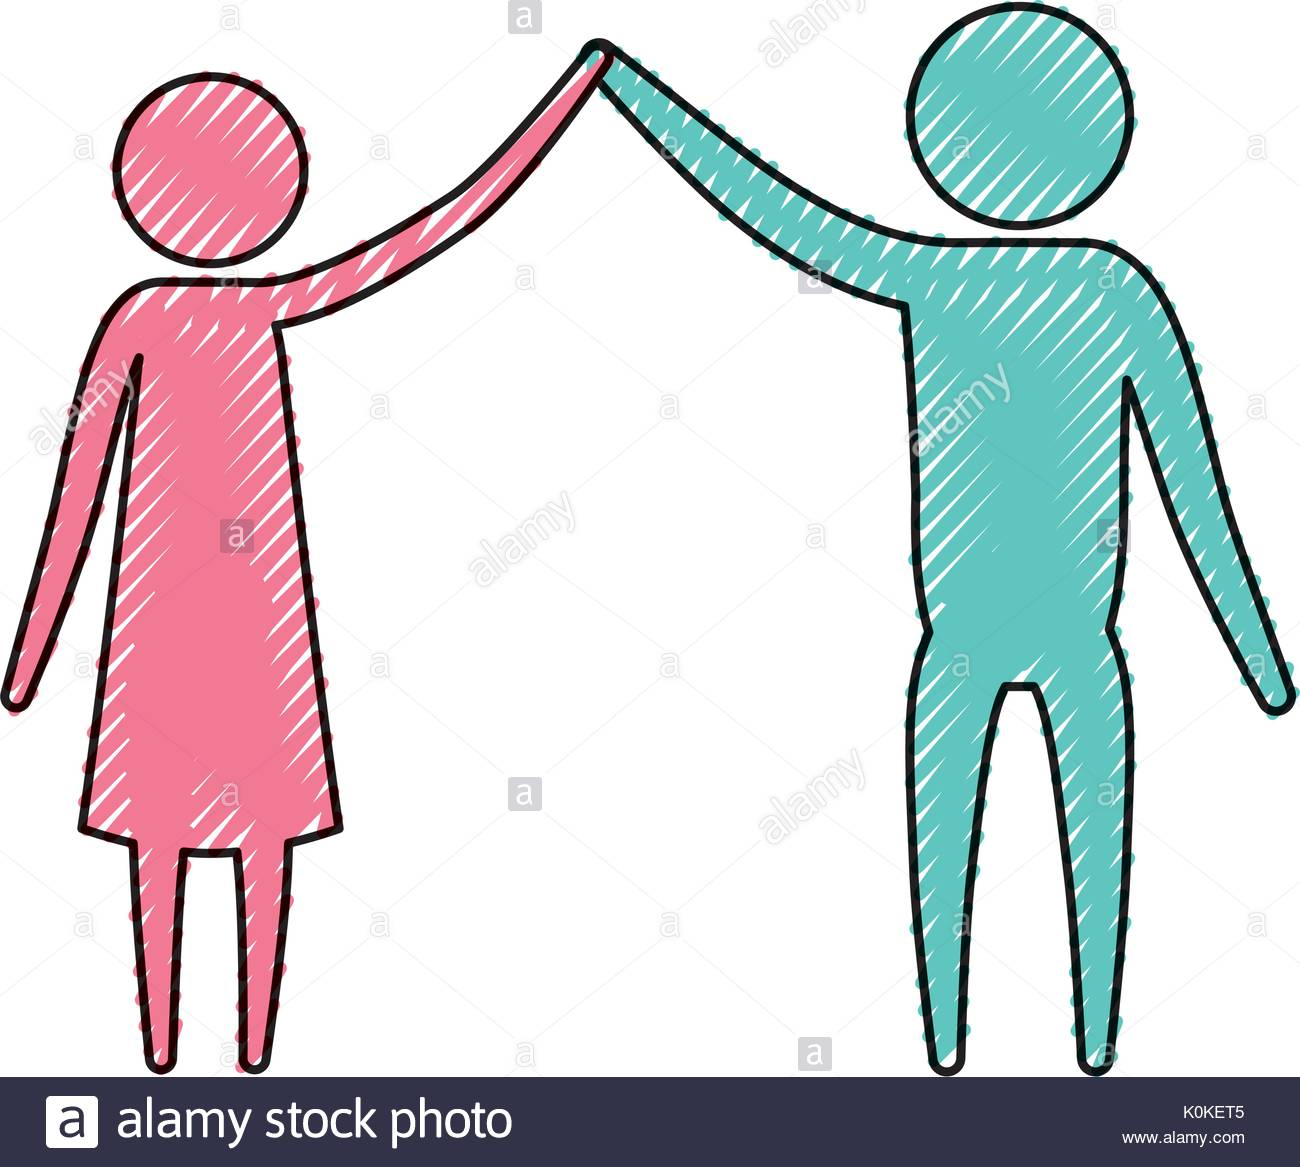 1300x1167 Color Crayon Silhouette Pictogram Couple Clashing Hands Stock